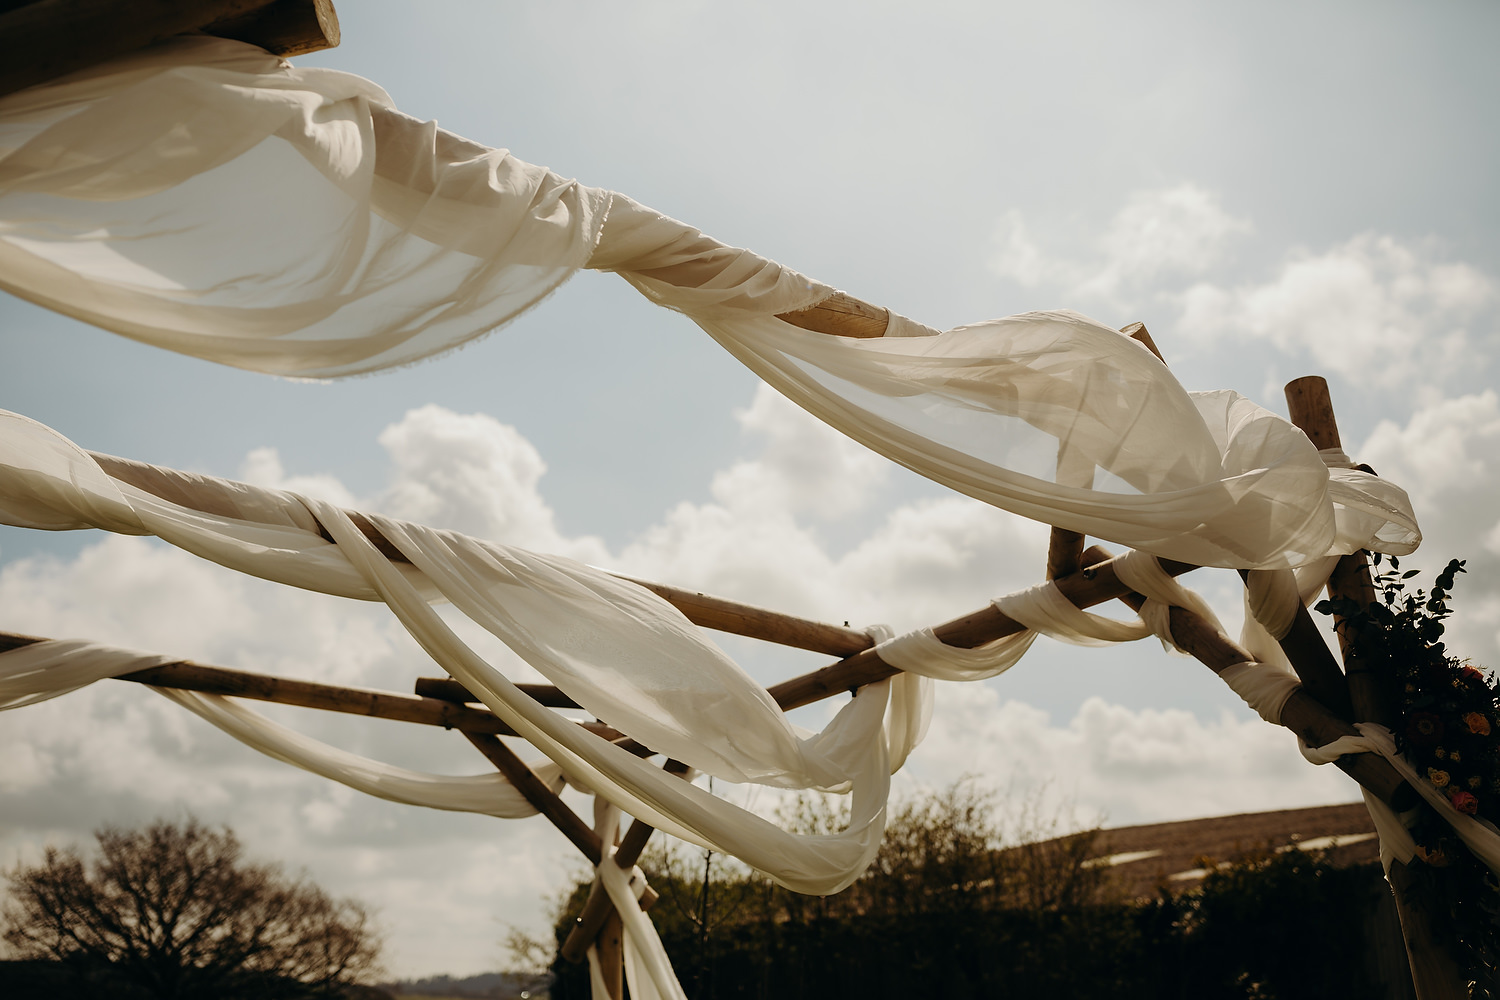 ceremony space with sheets over wooden frame